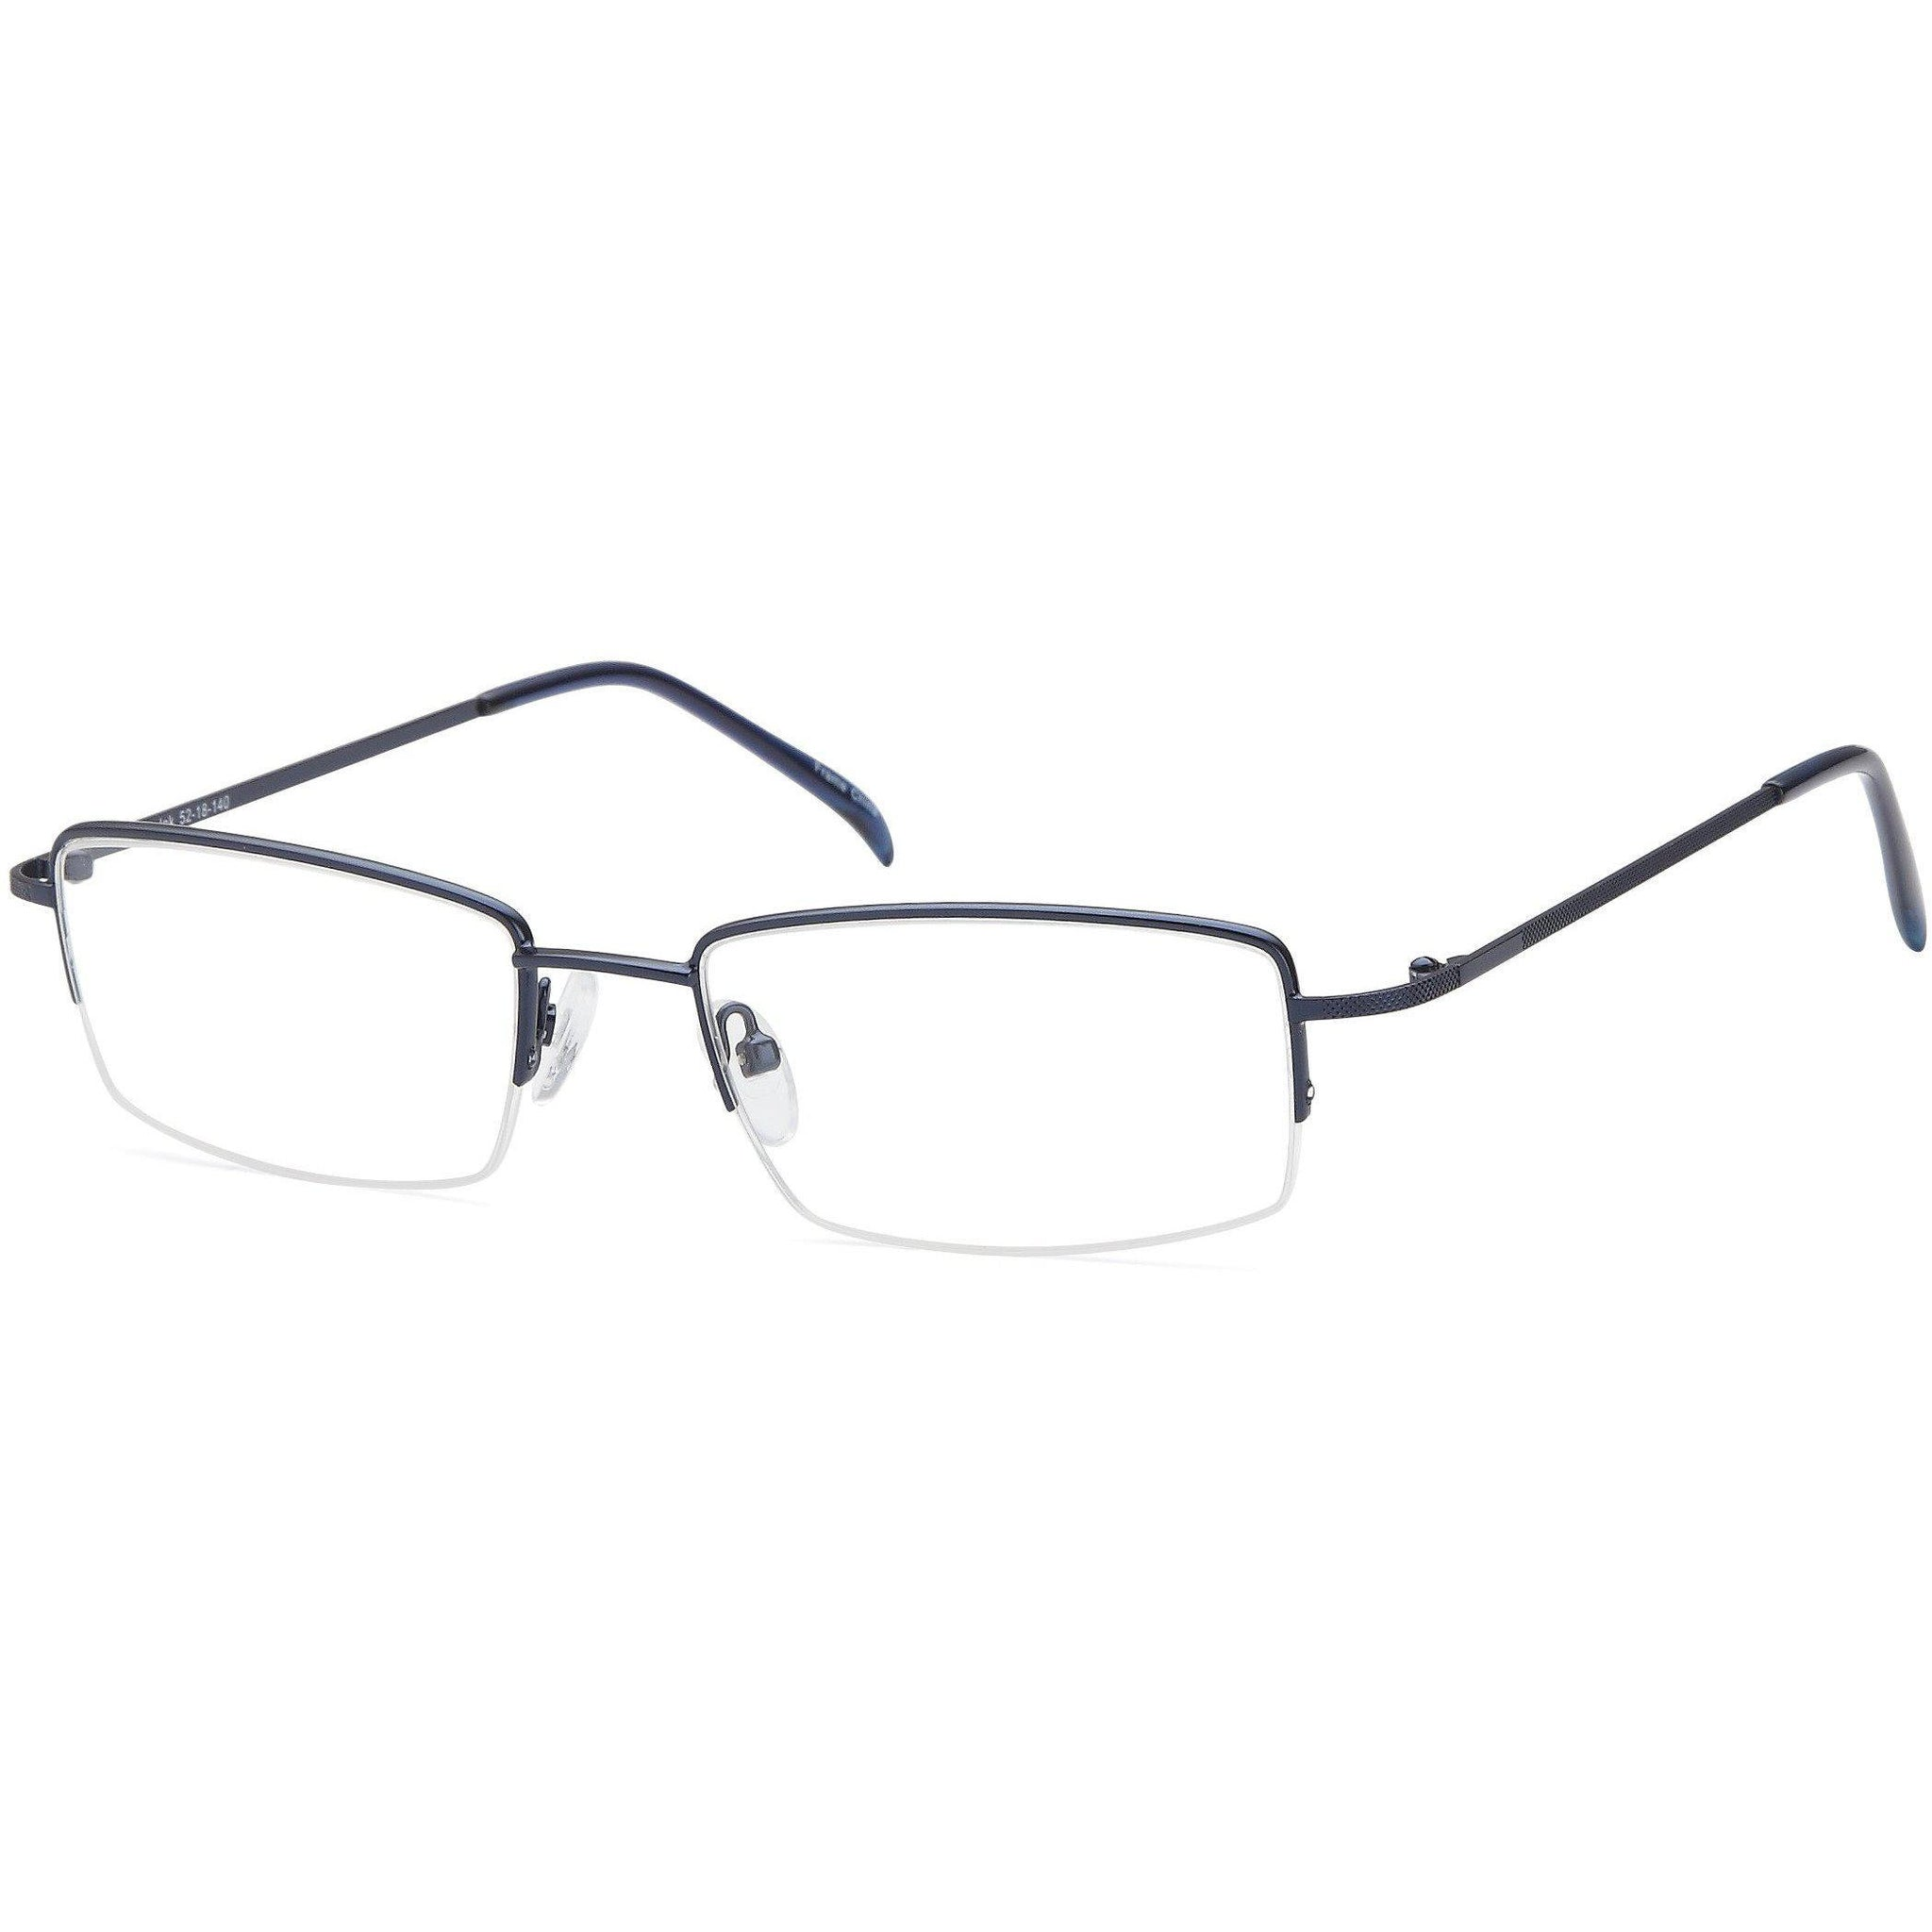 Classics Prescription Glasses VP 214 Frames